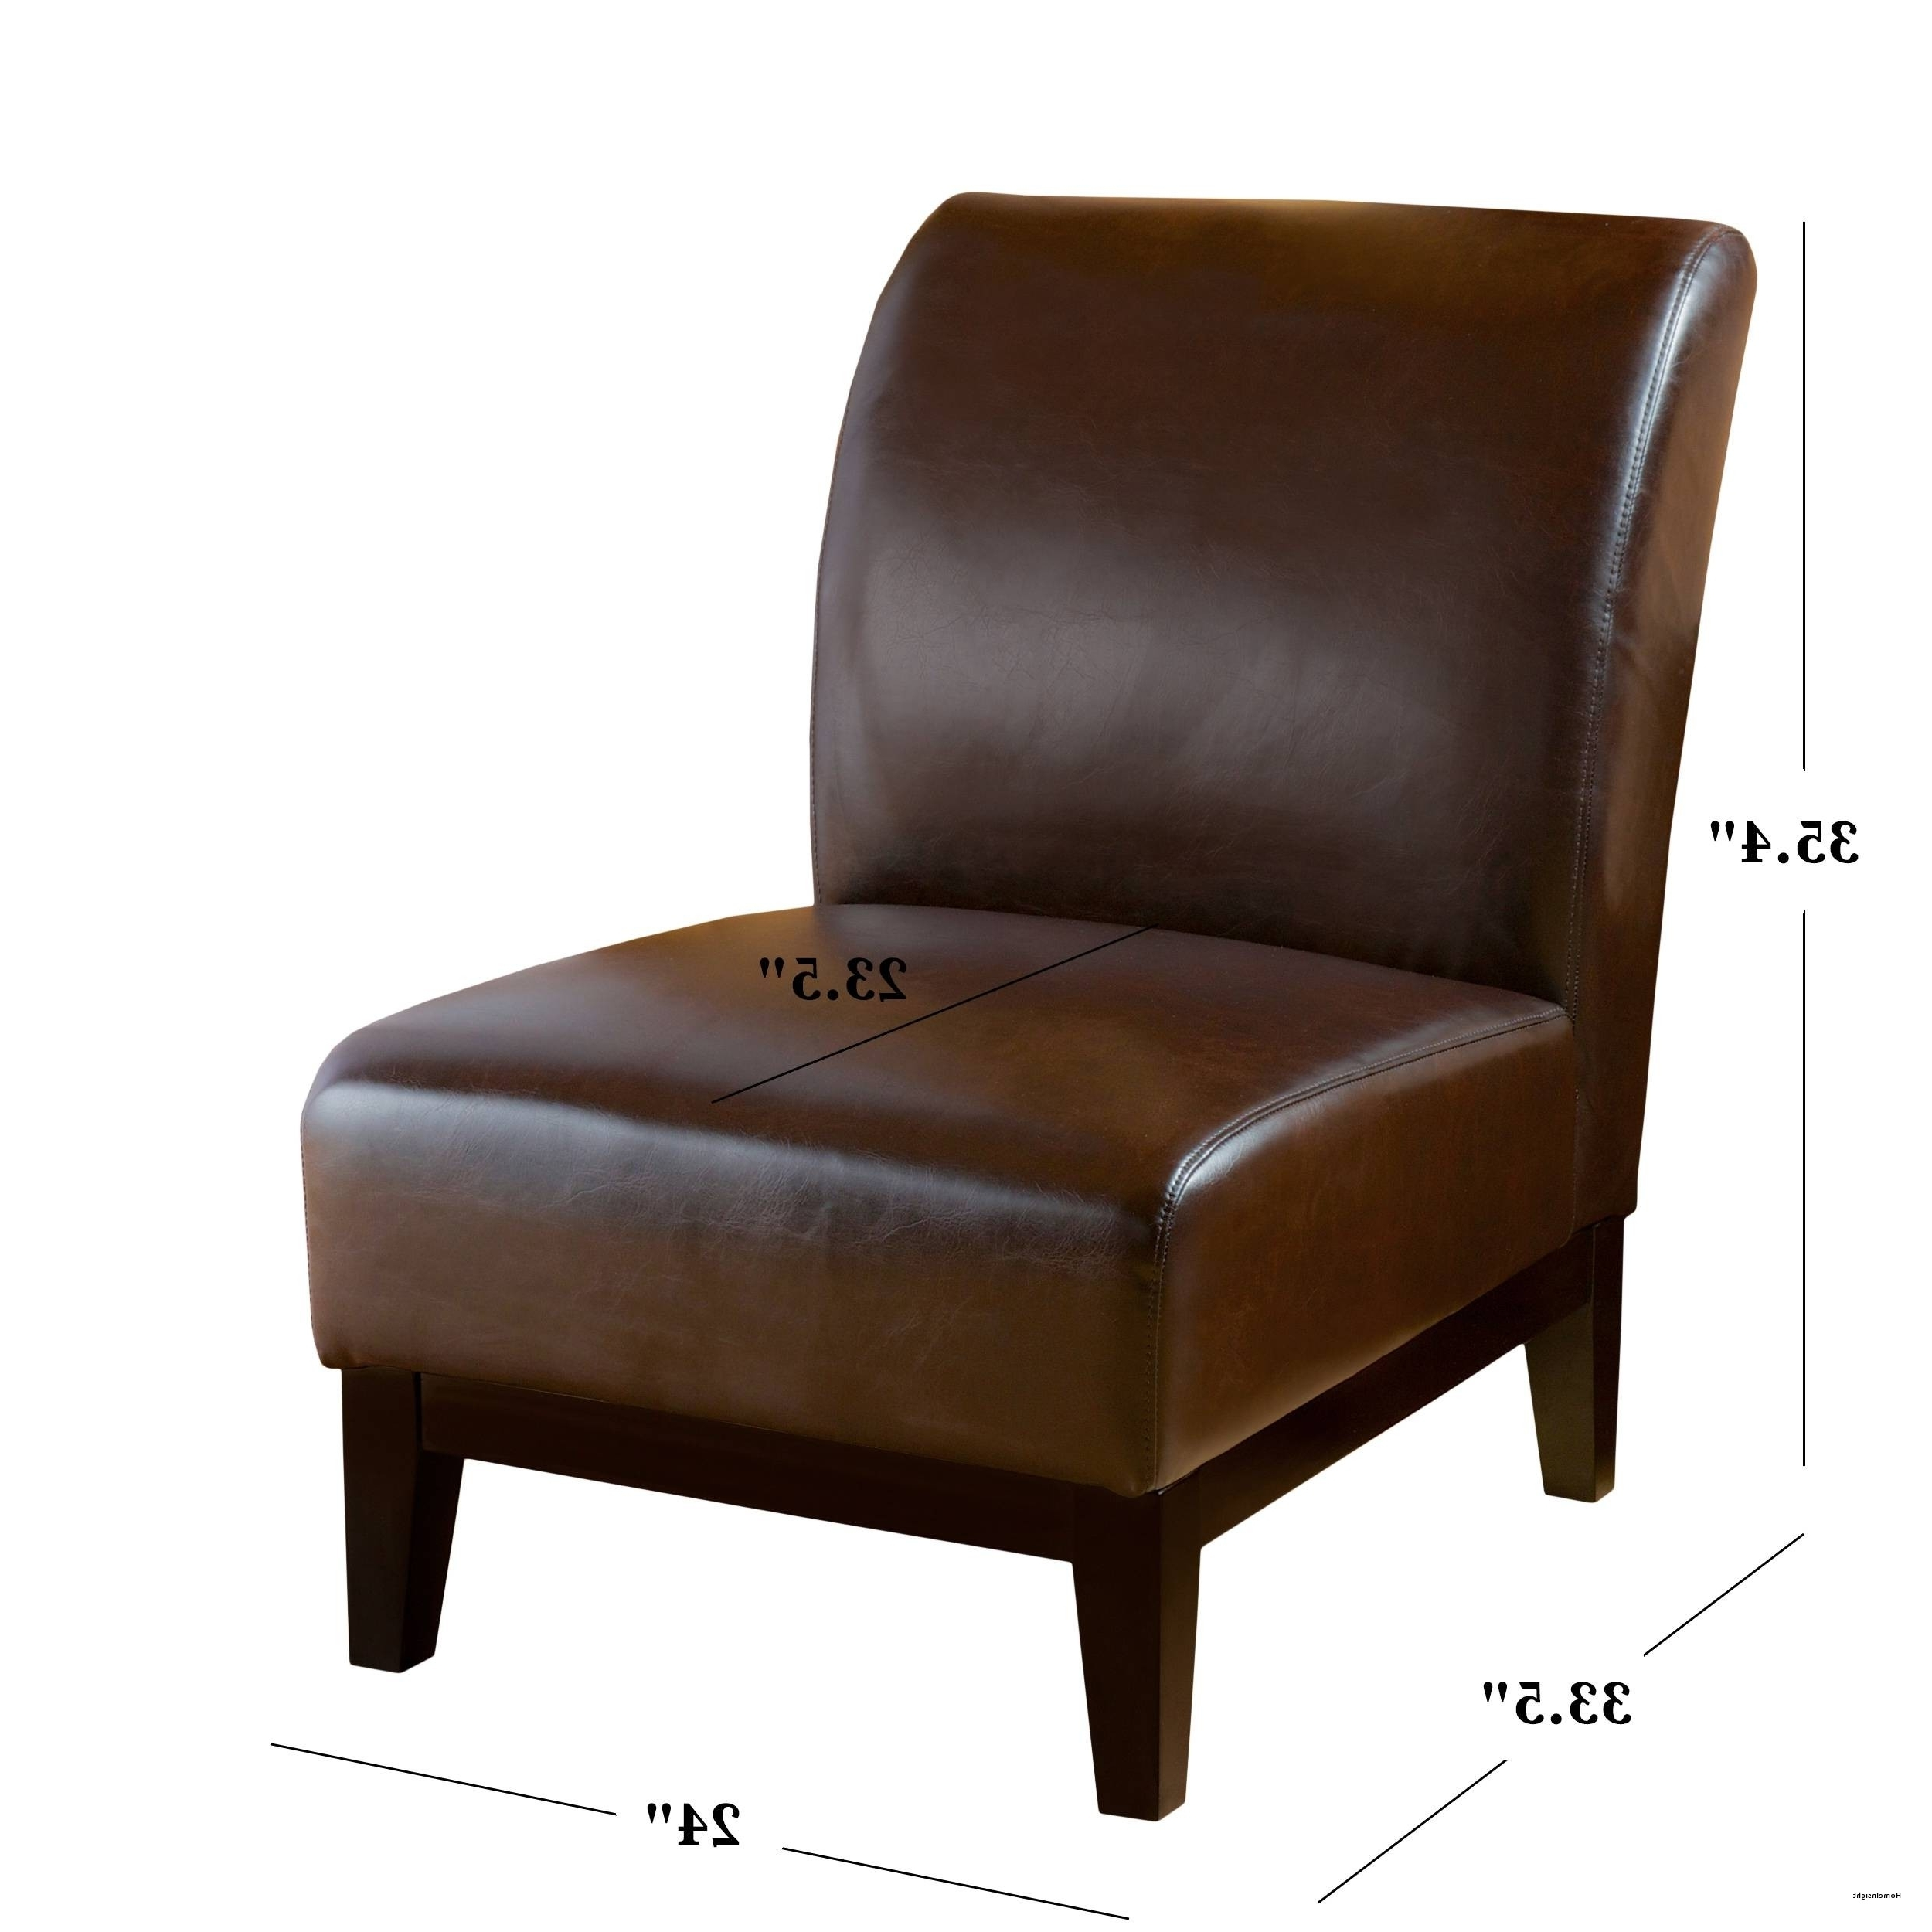 Heel Chair Sofas Within Most Current Lovely High Heel Chair Cheap (View 11 of 15)